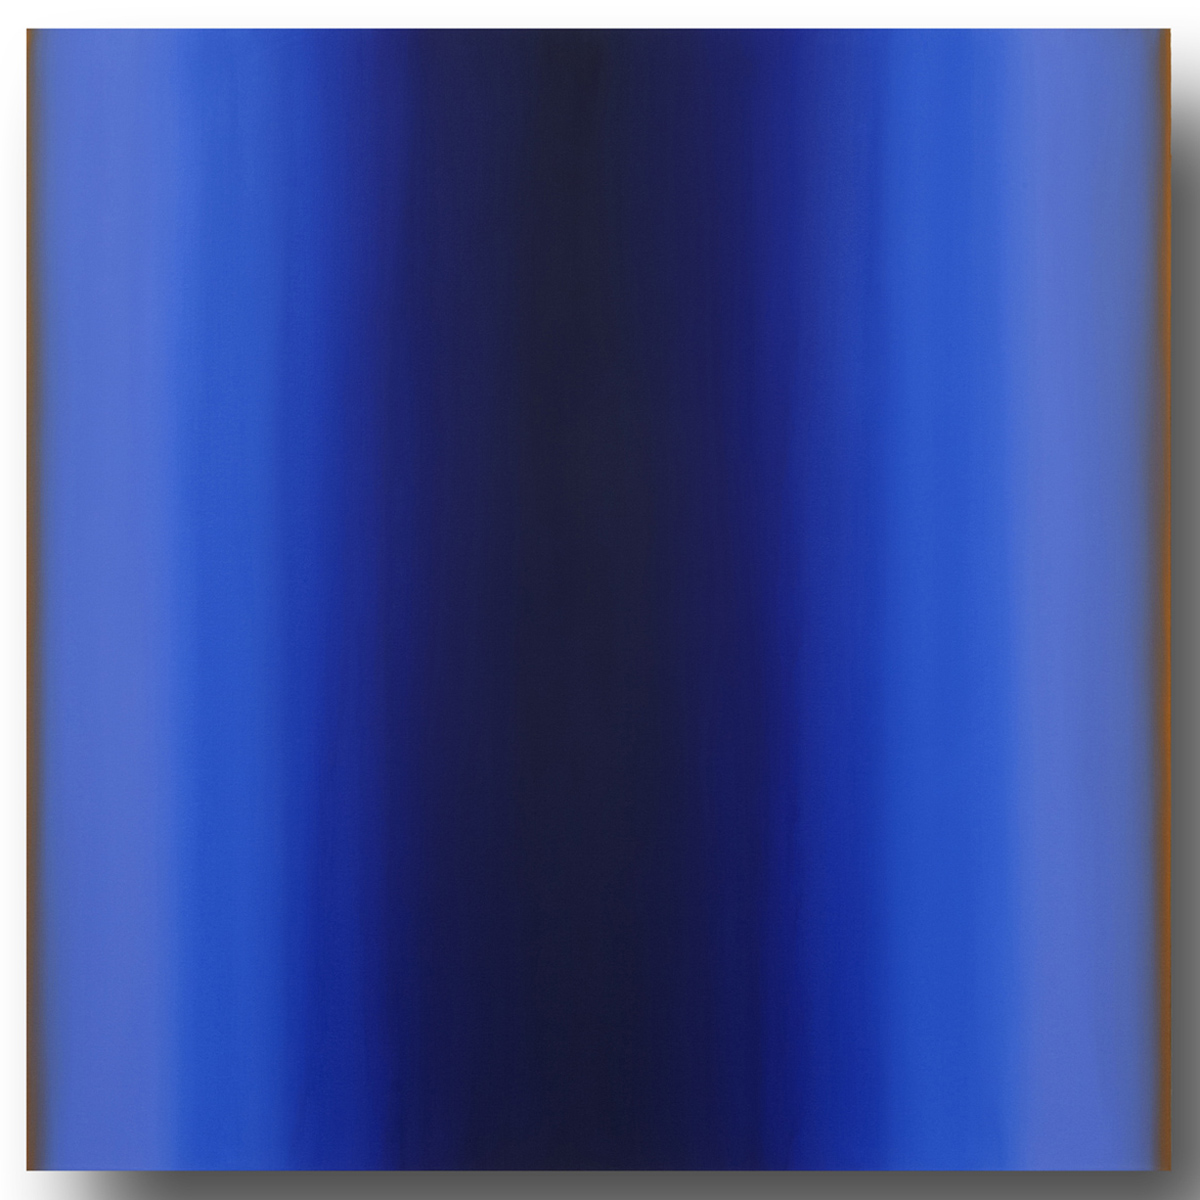 Mind's Eye Blue Orange 5-S4848 (Blue Violet), Sense Certainty Series, 2014, oil on canvas on custom beveled stretcher, 48 x 48 in. (122 x 122 cm.)